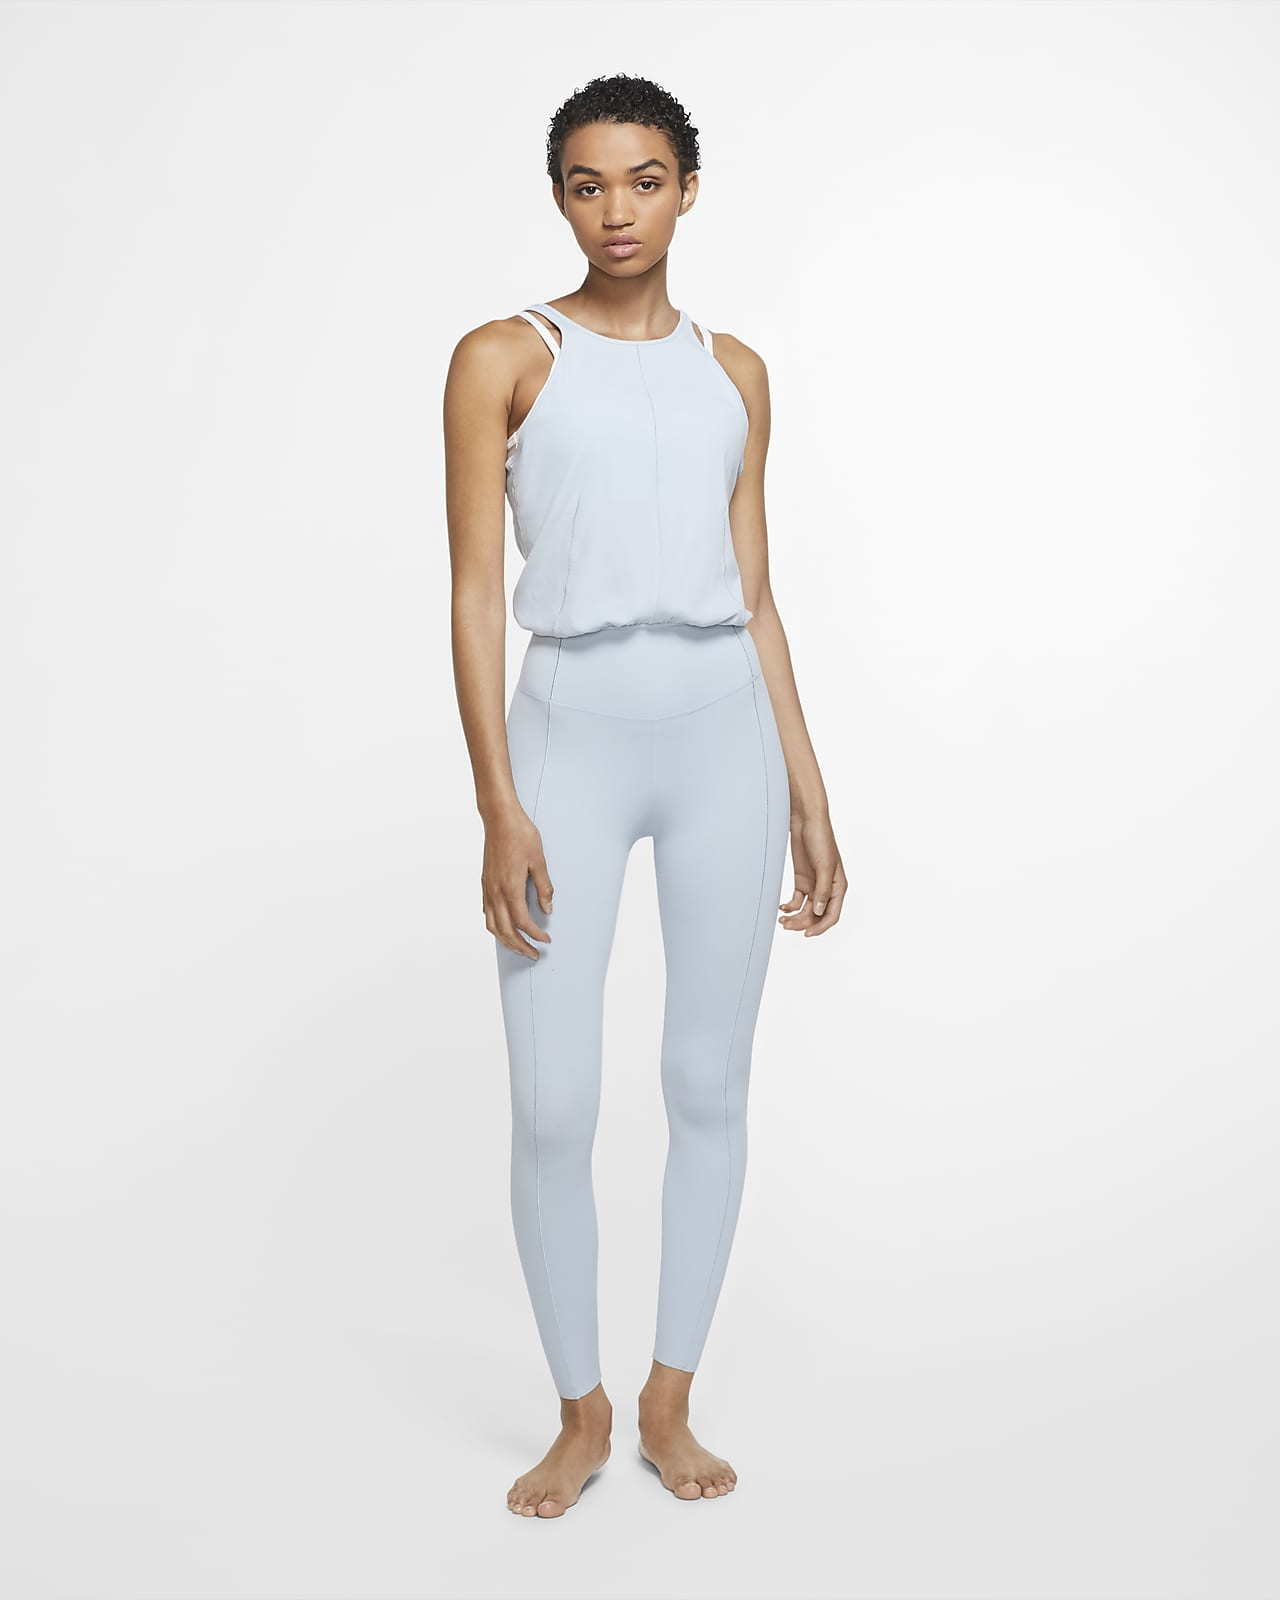 Nike Yoga Women's Jumpsuit